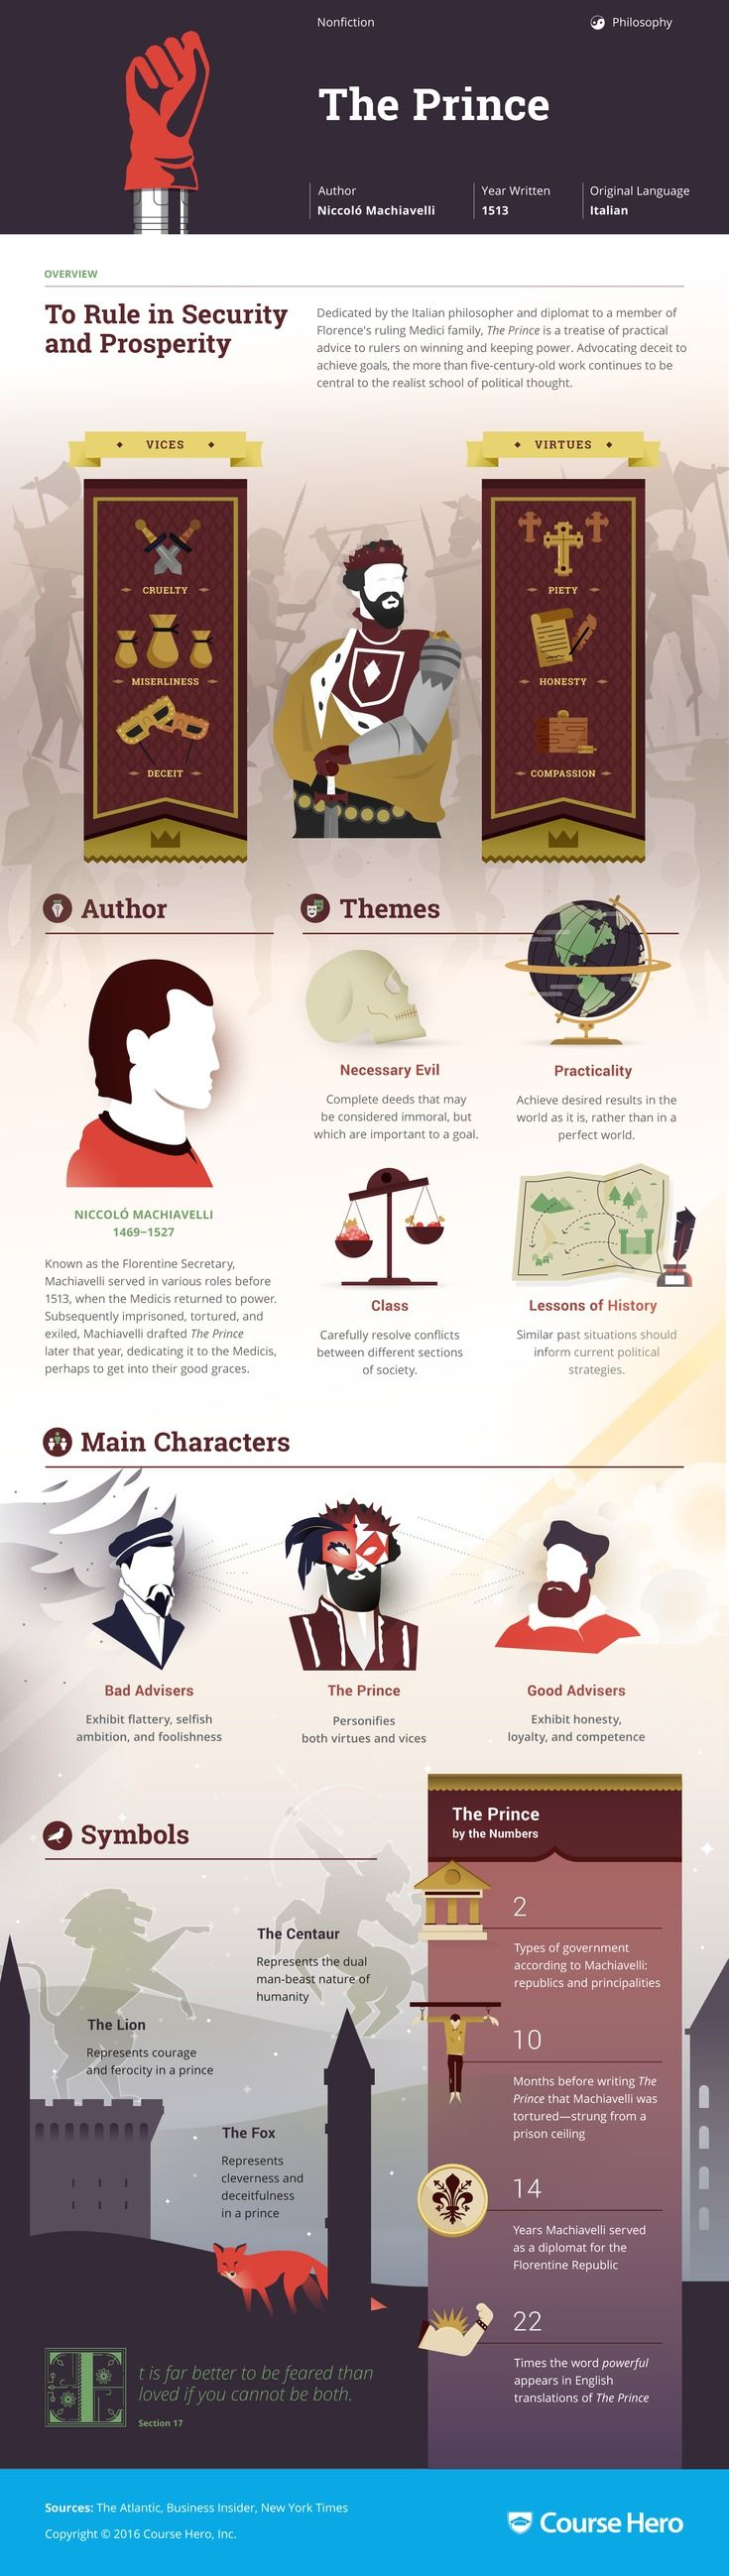 This 'The Prince' infographic from Course Hero is as awesome as it is helpful. Check it out!